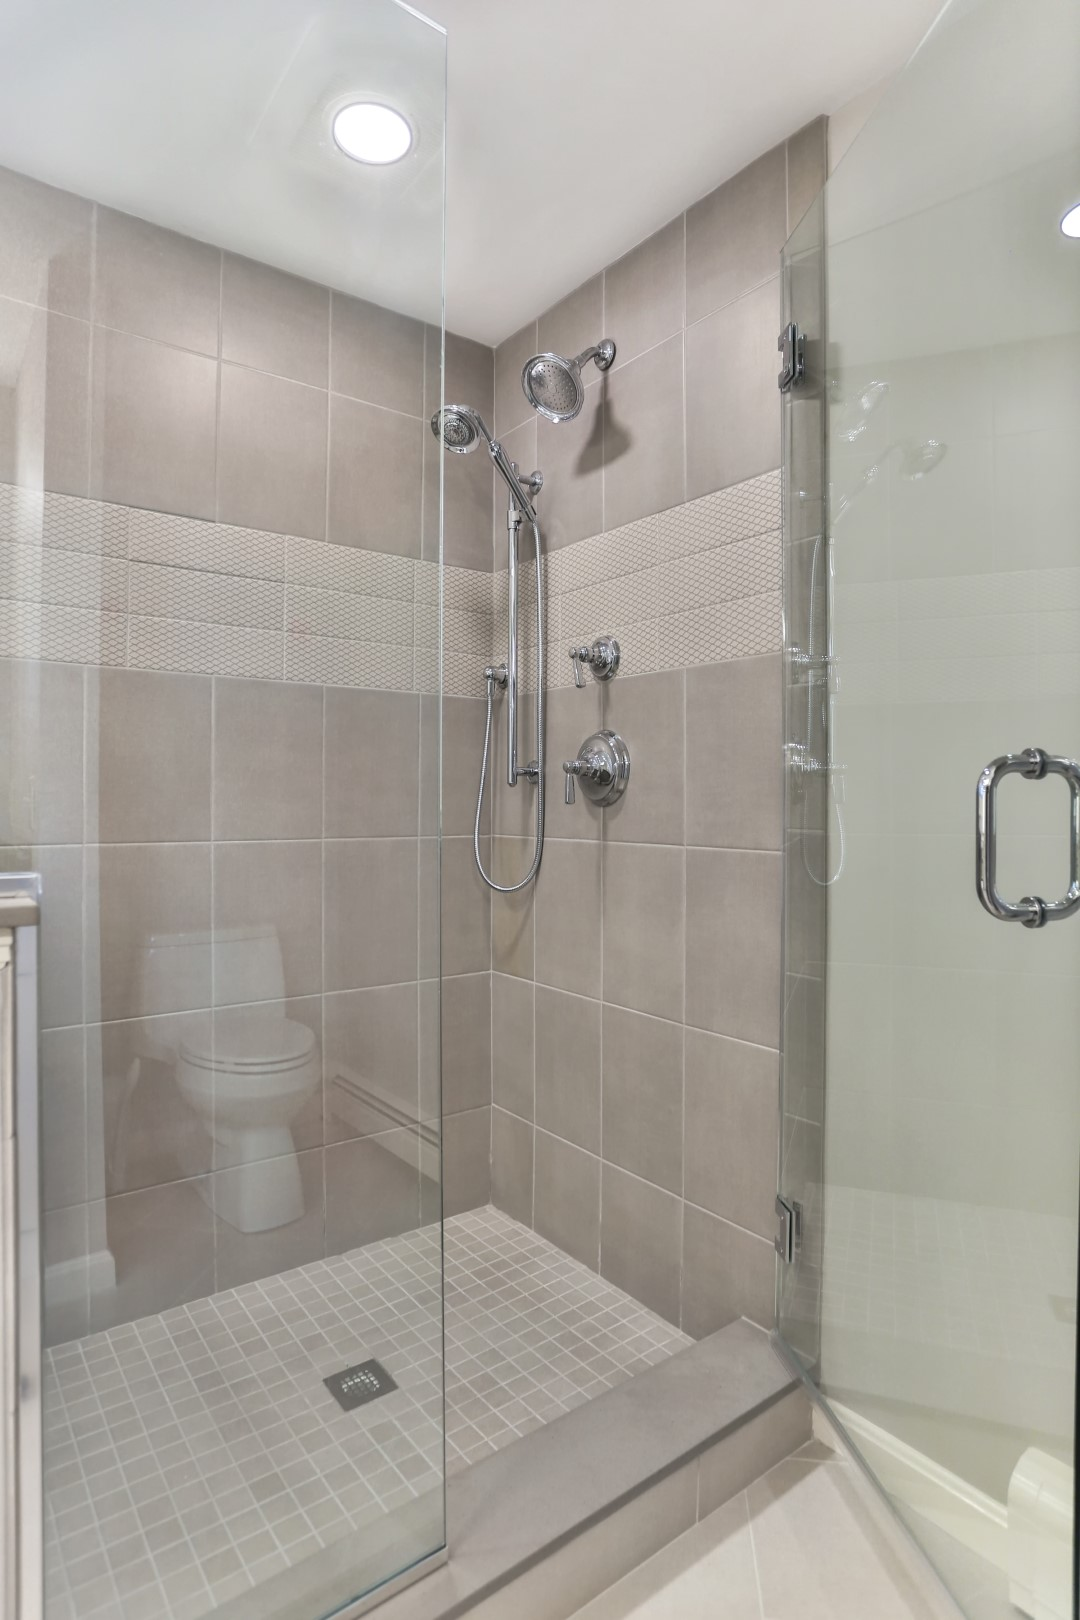 Residential - Master Bath Renovation 5.jpg